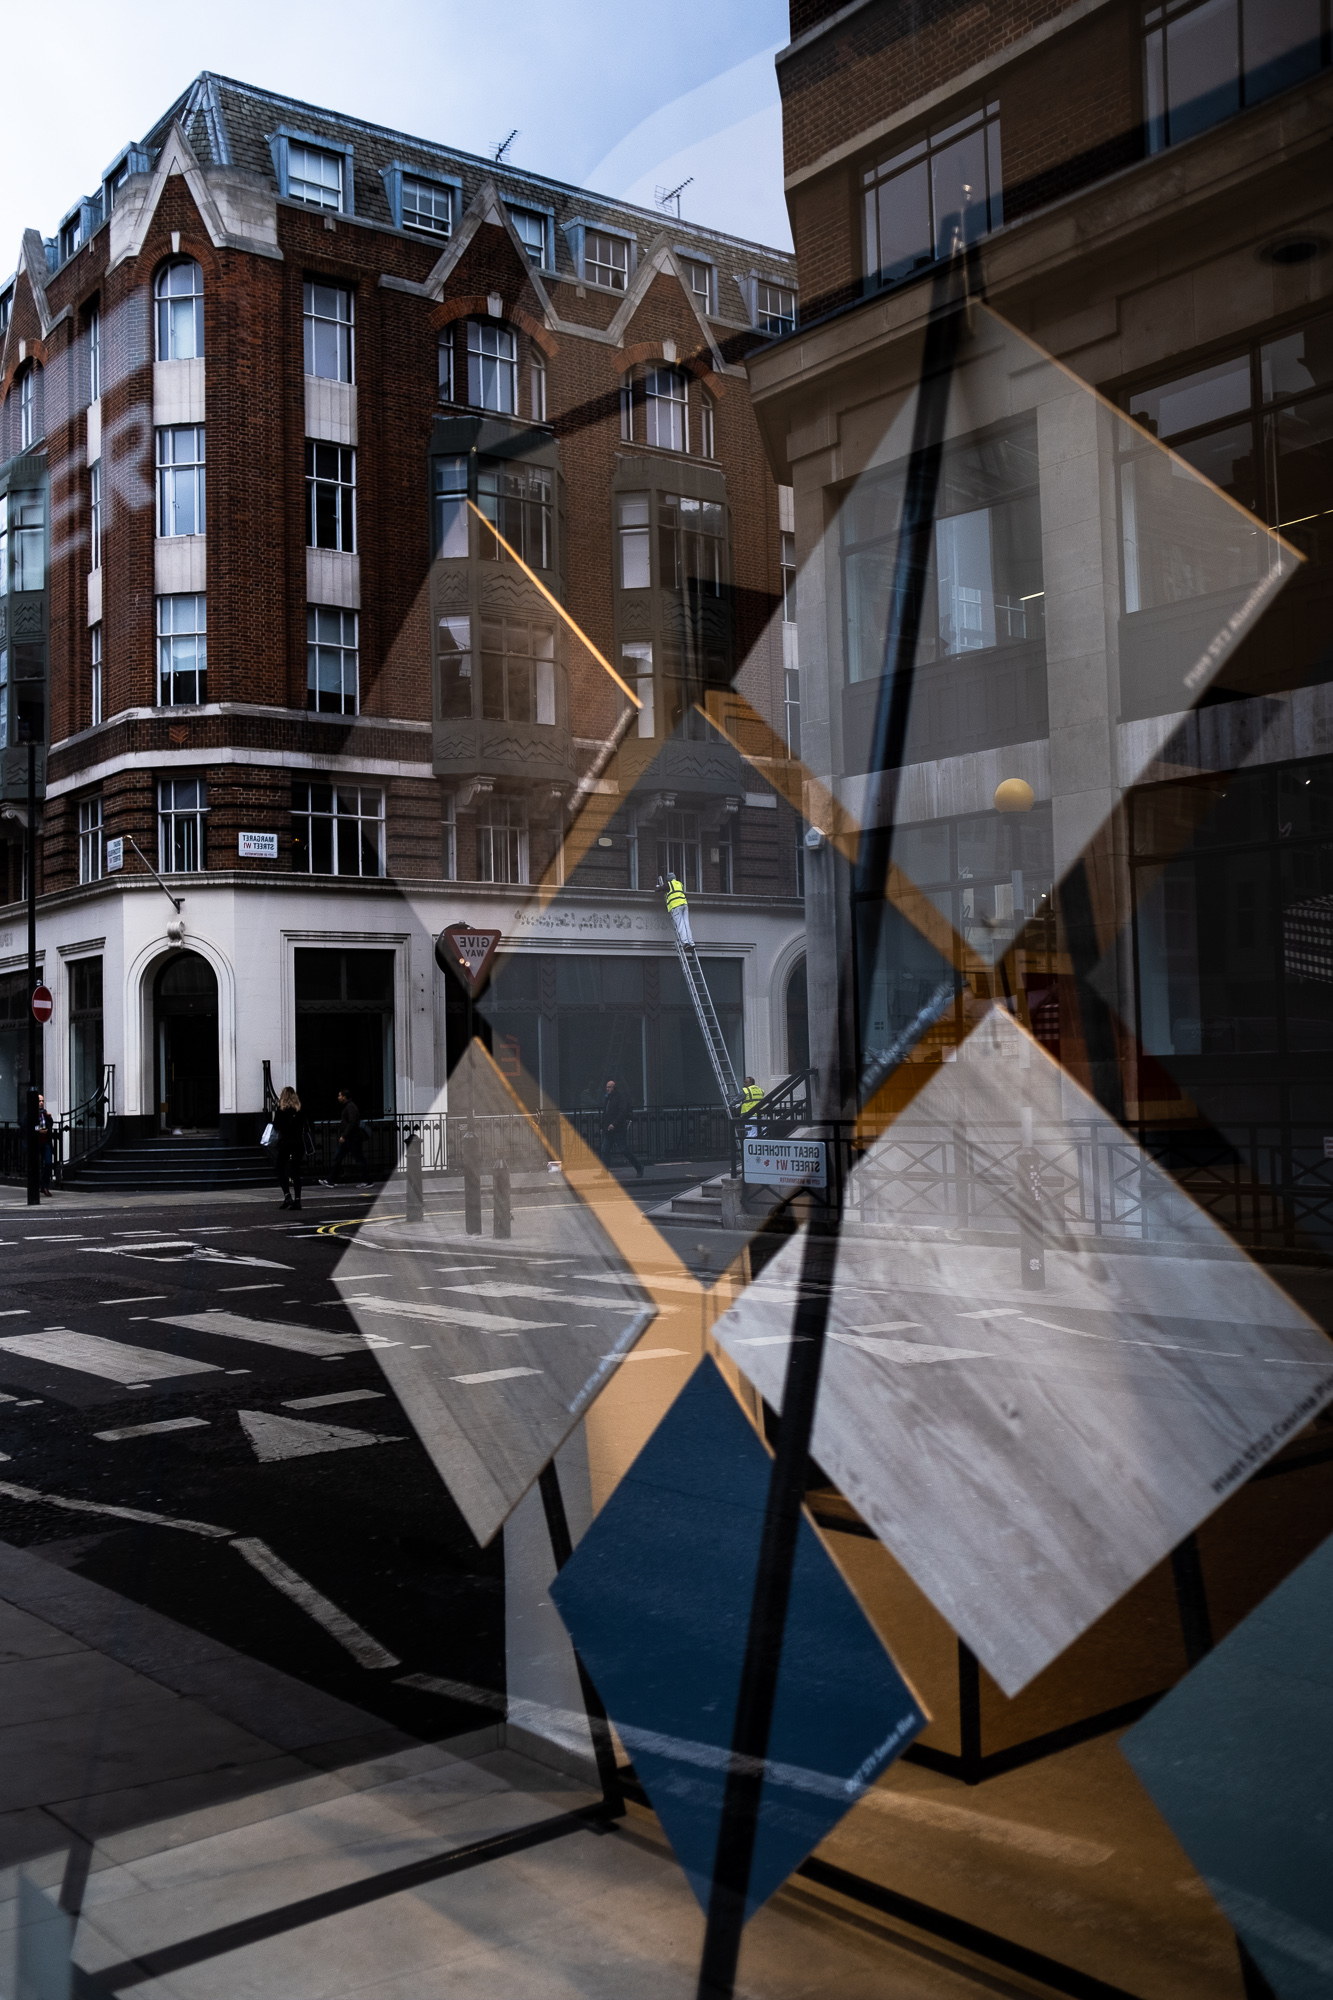 Geometry, reflections and a man on a ladder